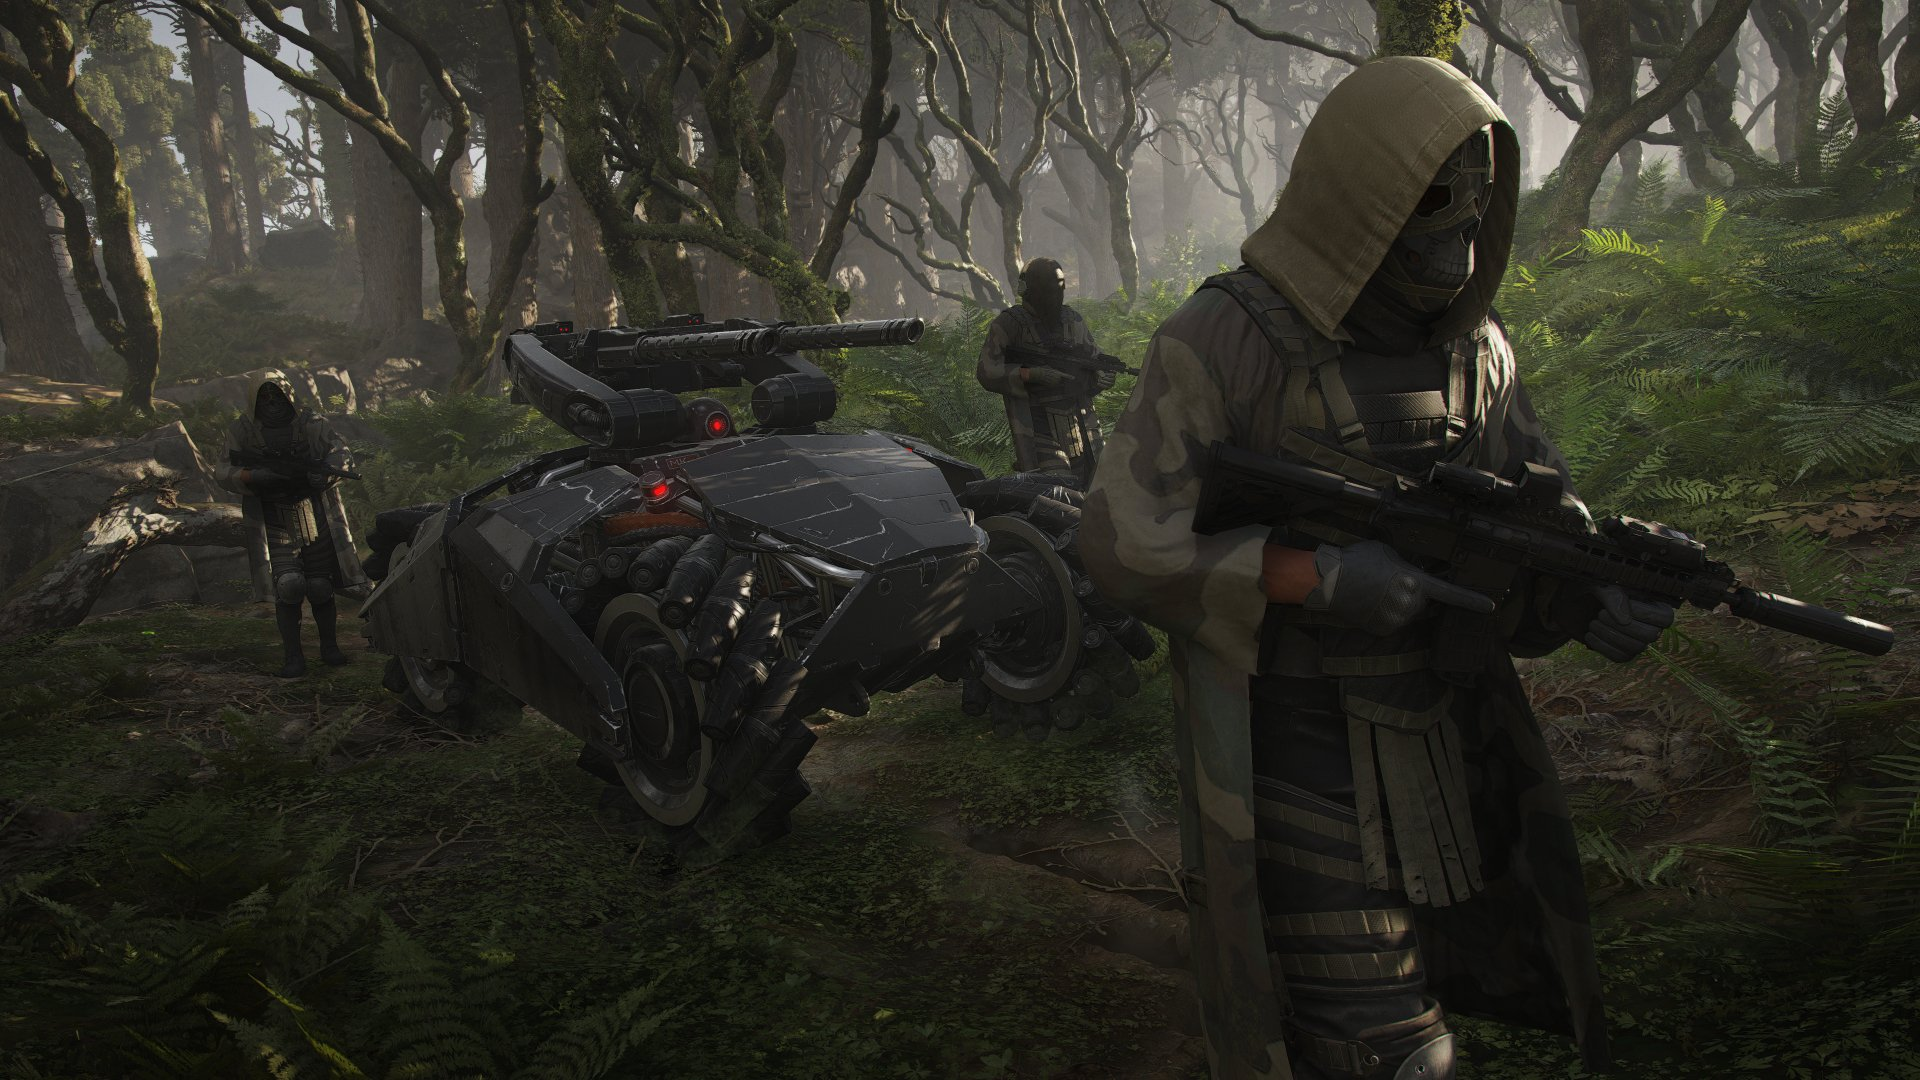 Ghost Recon: Breakpoint Developers Temporarily Remove 'Time Saver' Microtransactions